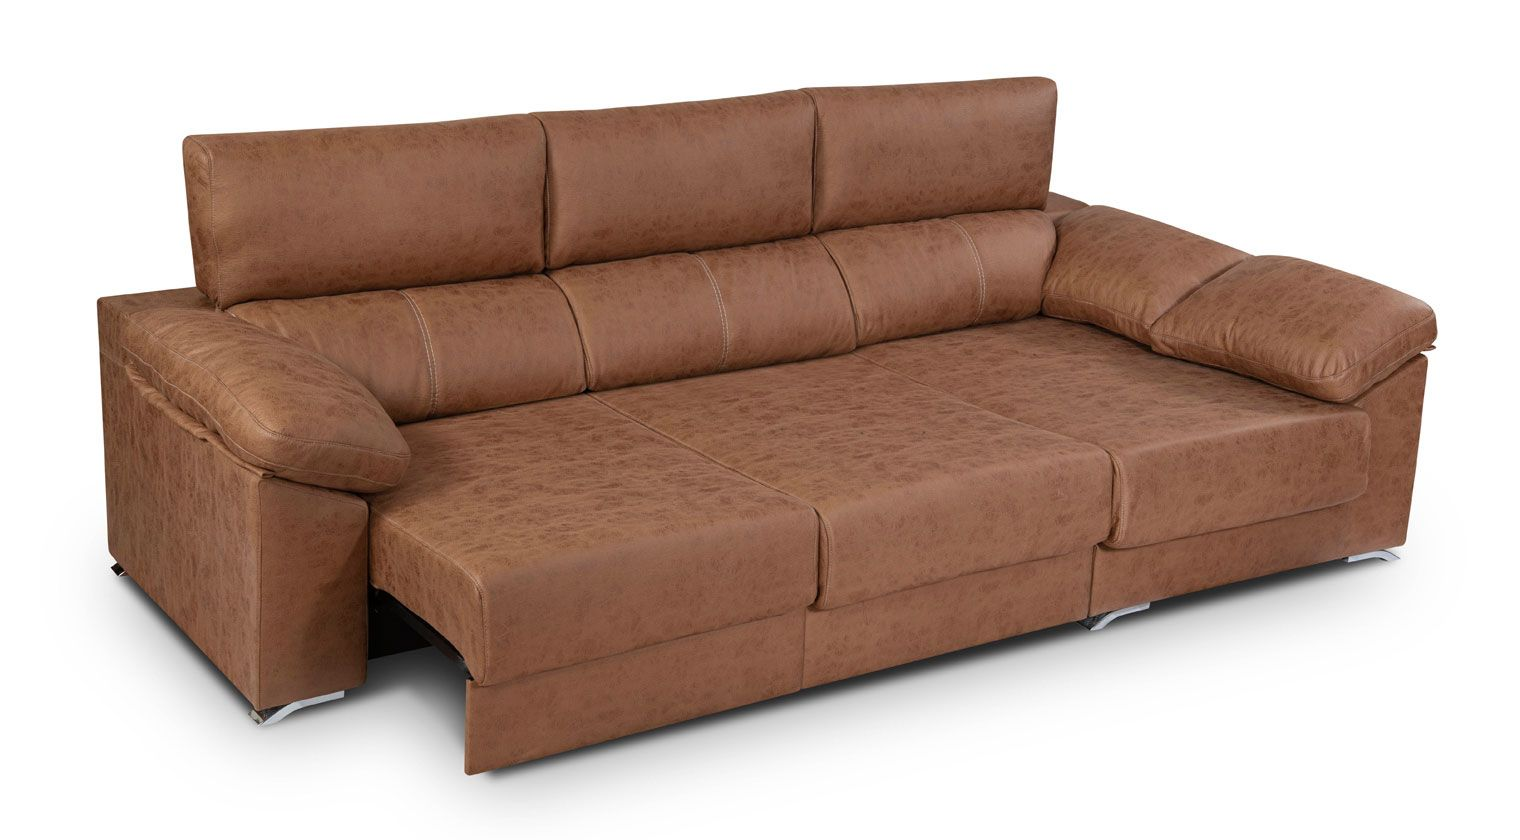 Comprar chaise longue tela lleida mod sofa 3 plazas chaise for Sofas baratos alicante